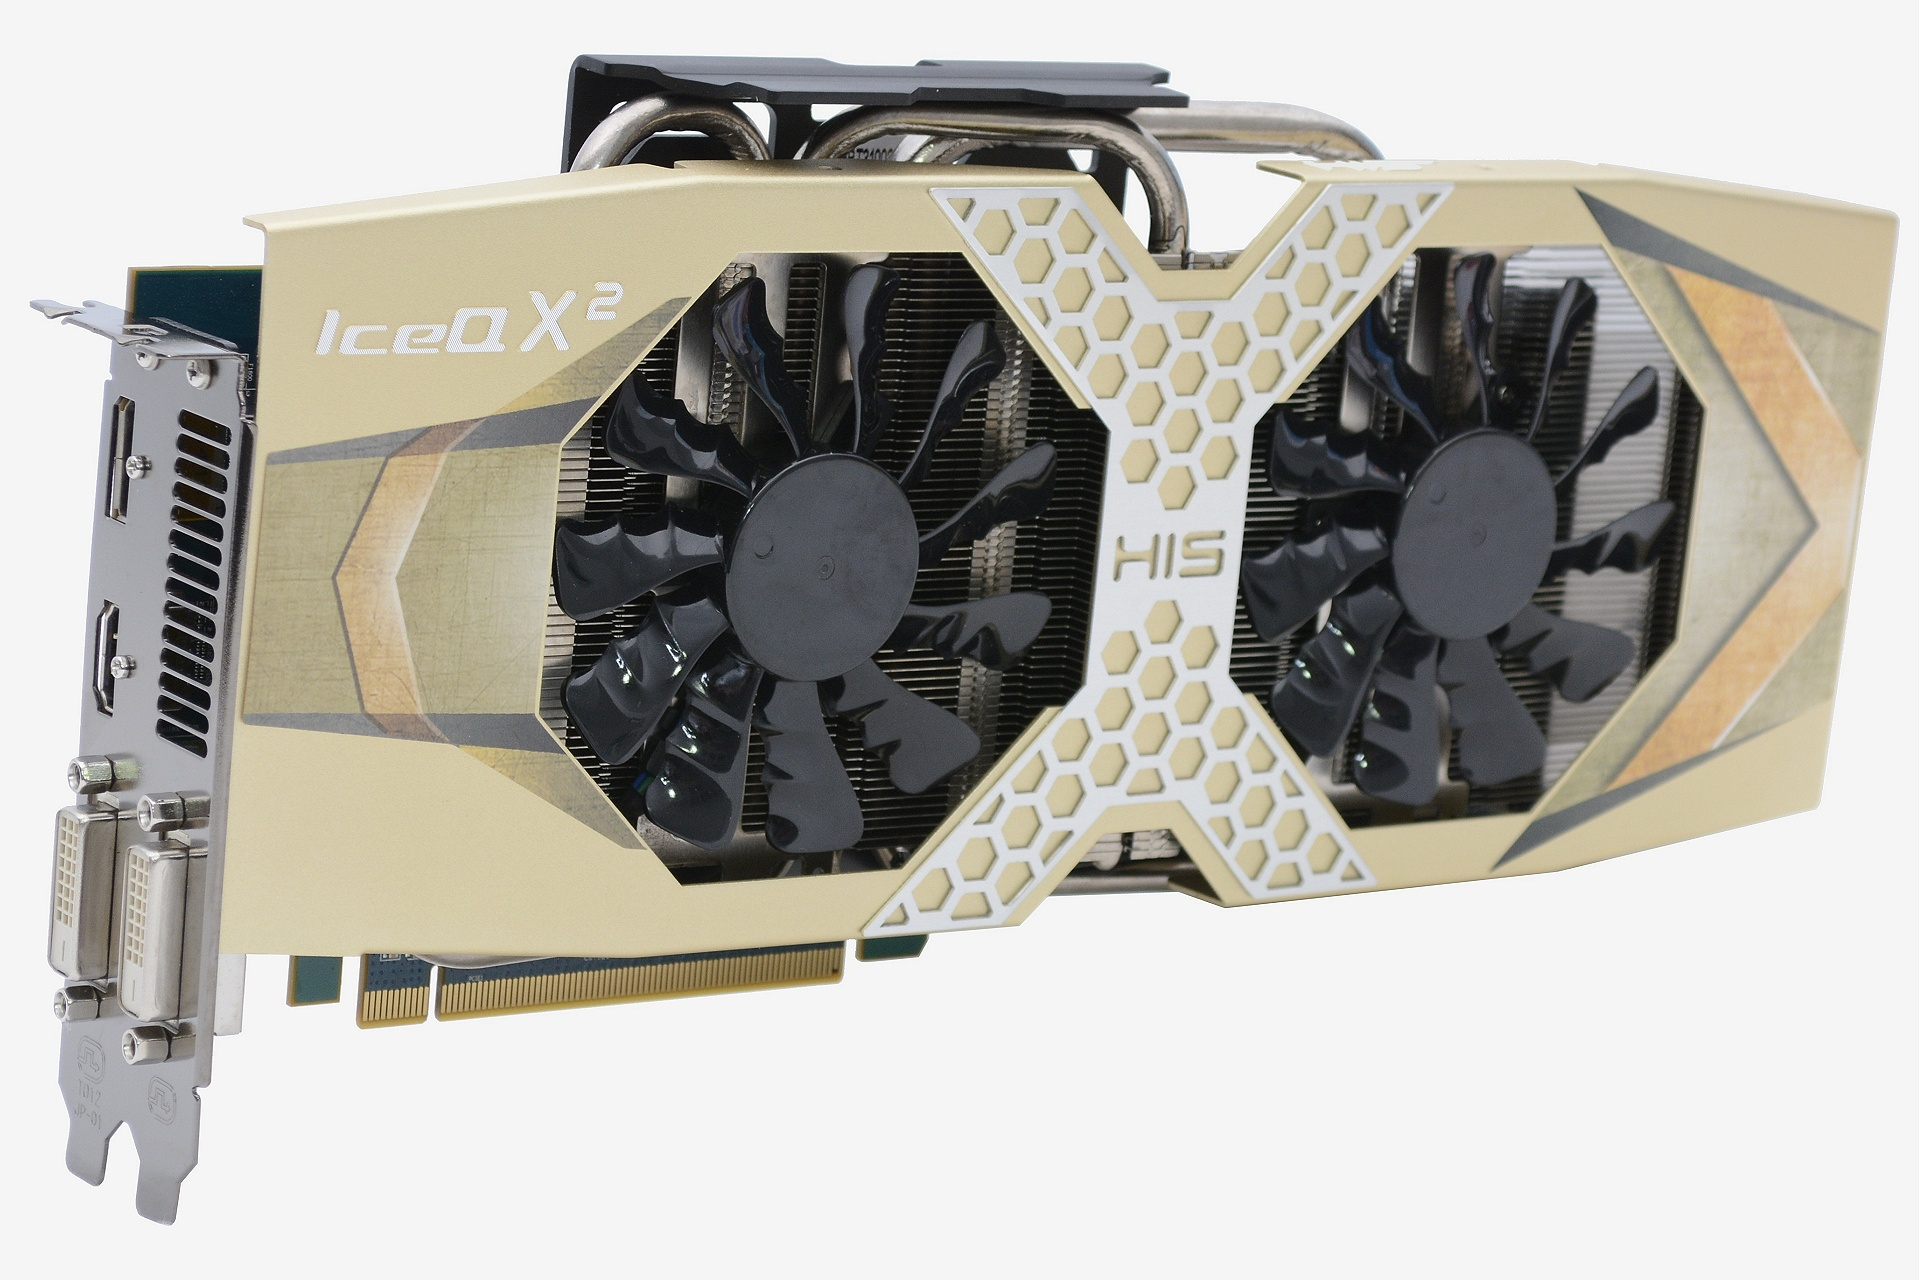 HIS IceQ X² OC Radeon R9 390X, R9 390 & R9 380 Review - TechSpot